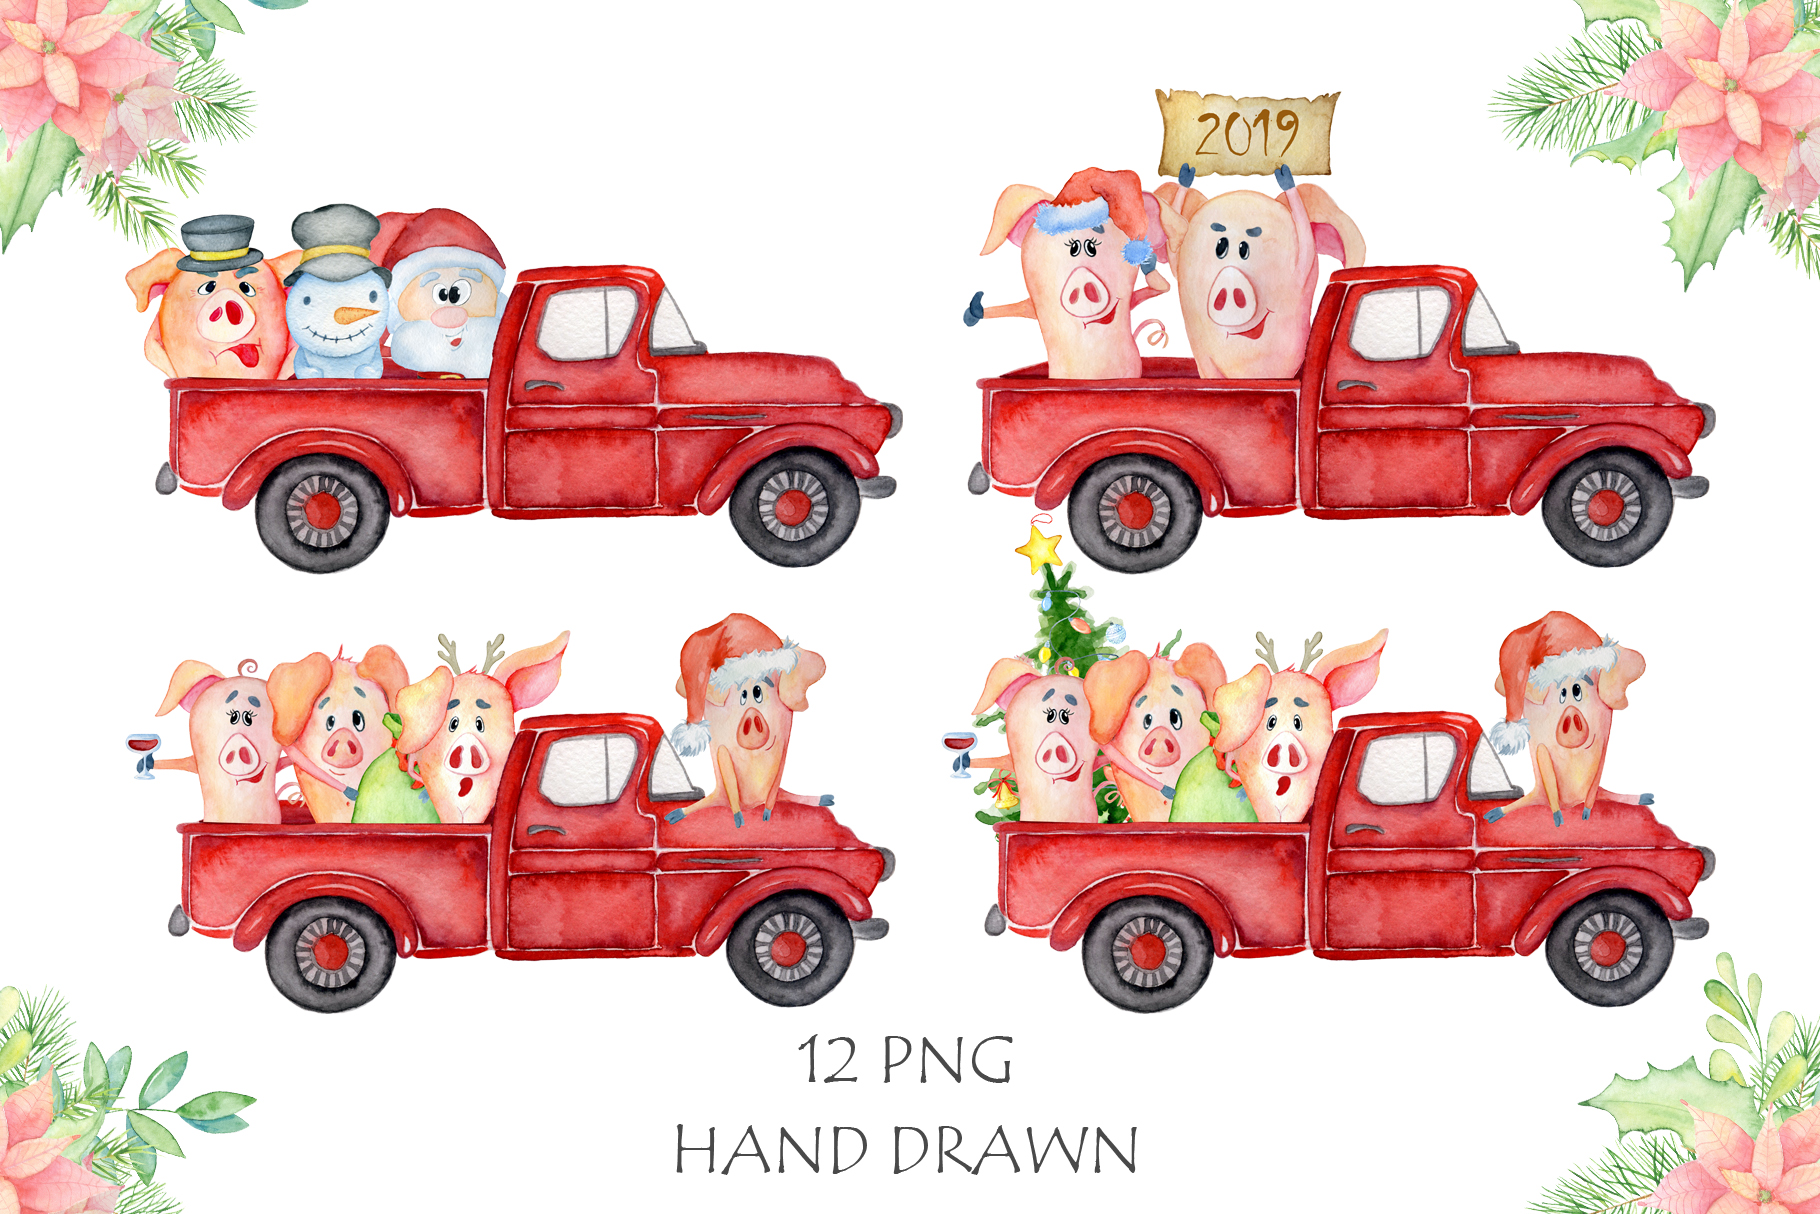 Christmas truck with xmas trees, sants and cute pigs example image 3